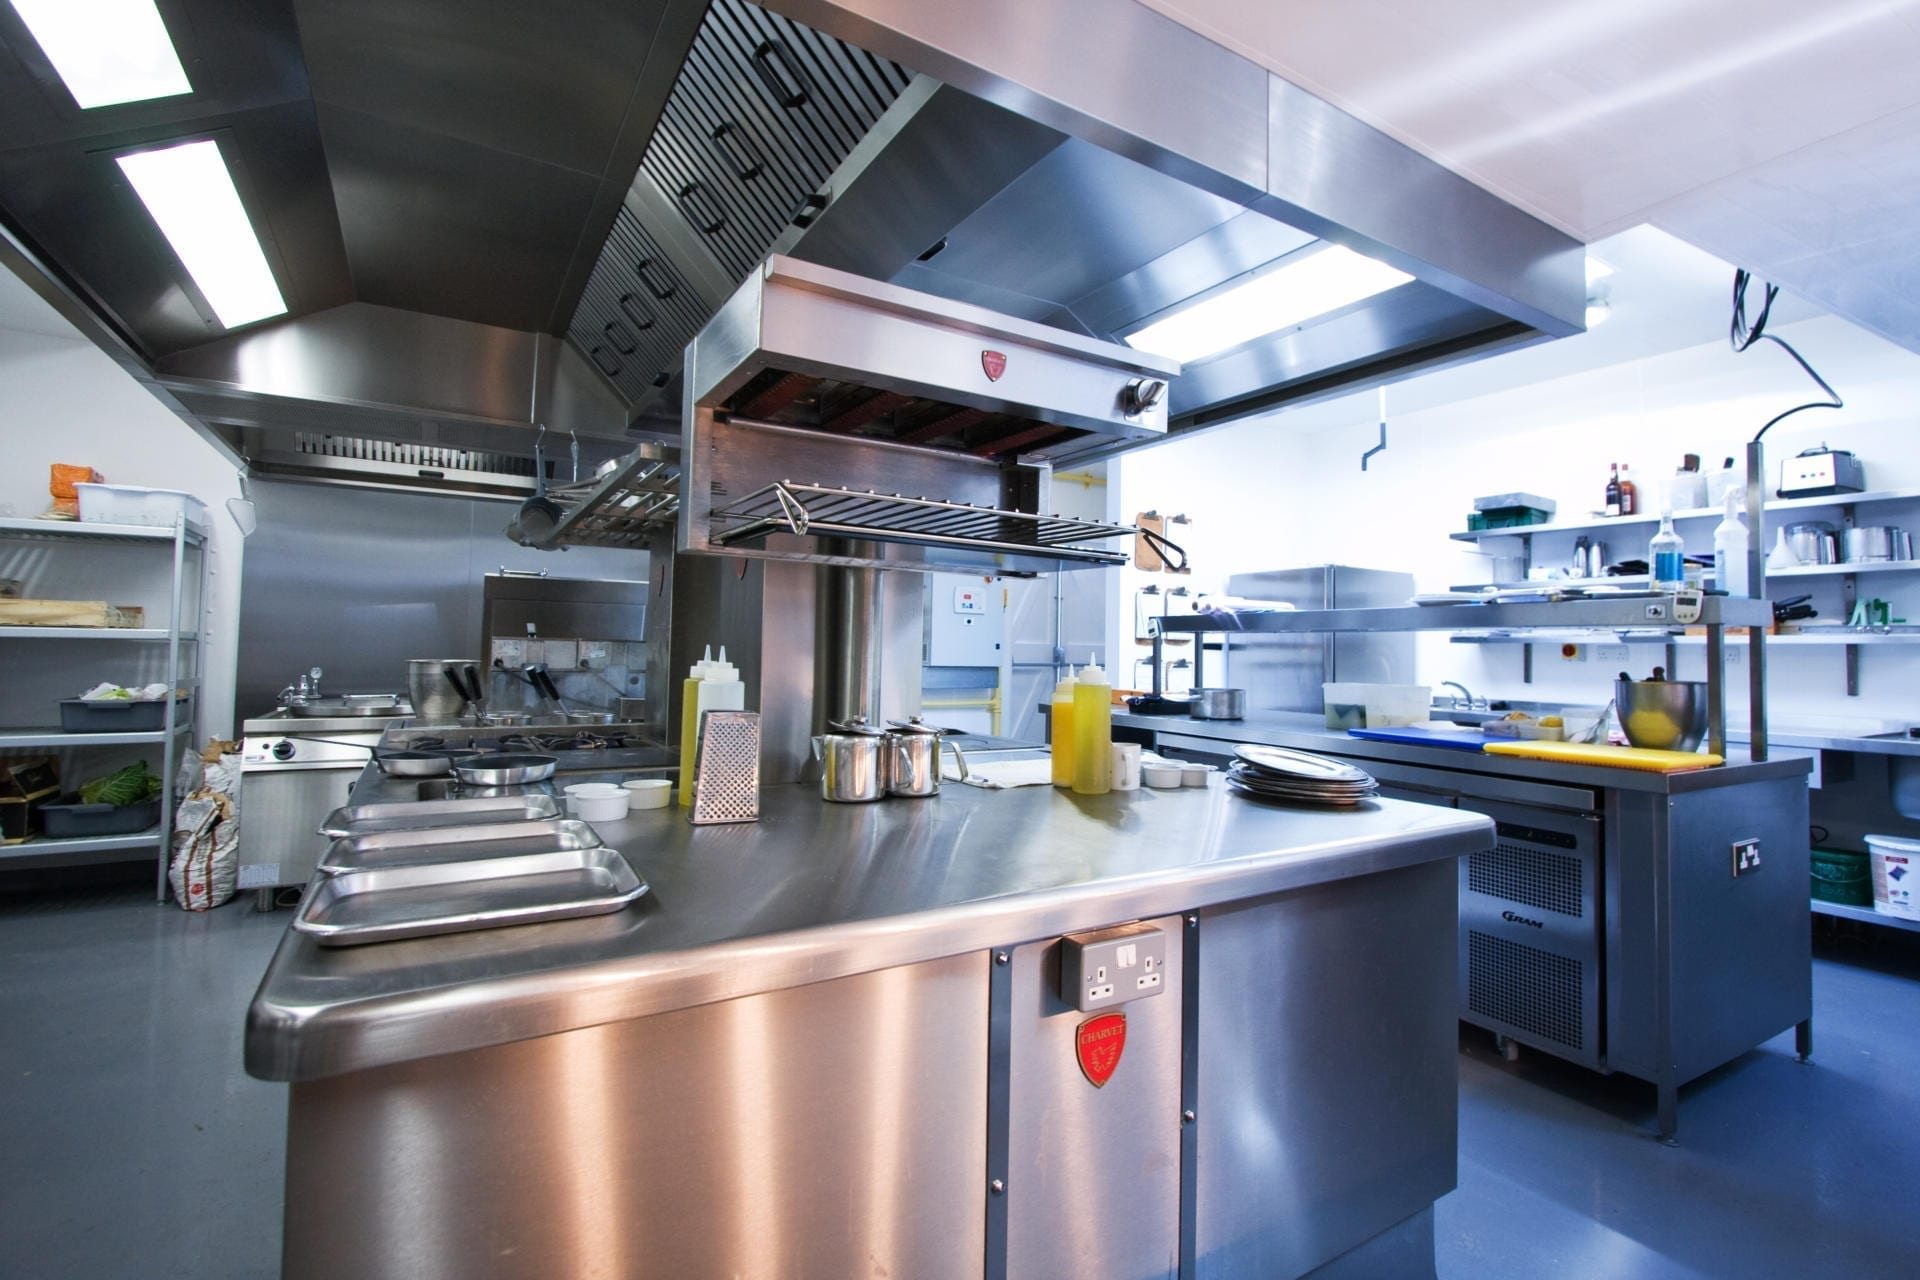 Ockenden-Manor-Hotel-Sussex-Restaurant-Kitchen-Fabrication-Stainless-Steel-Commercial-spacecatering_12